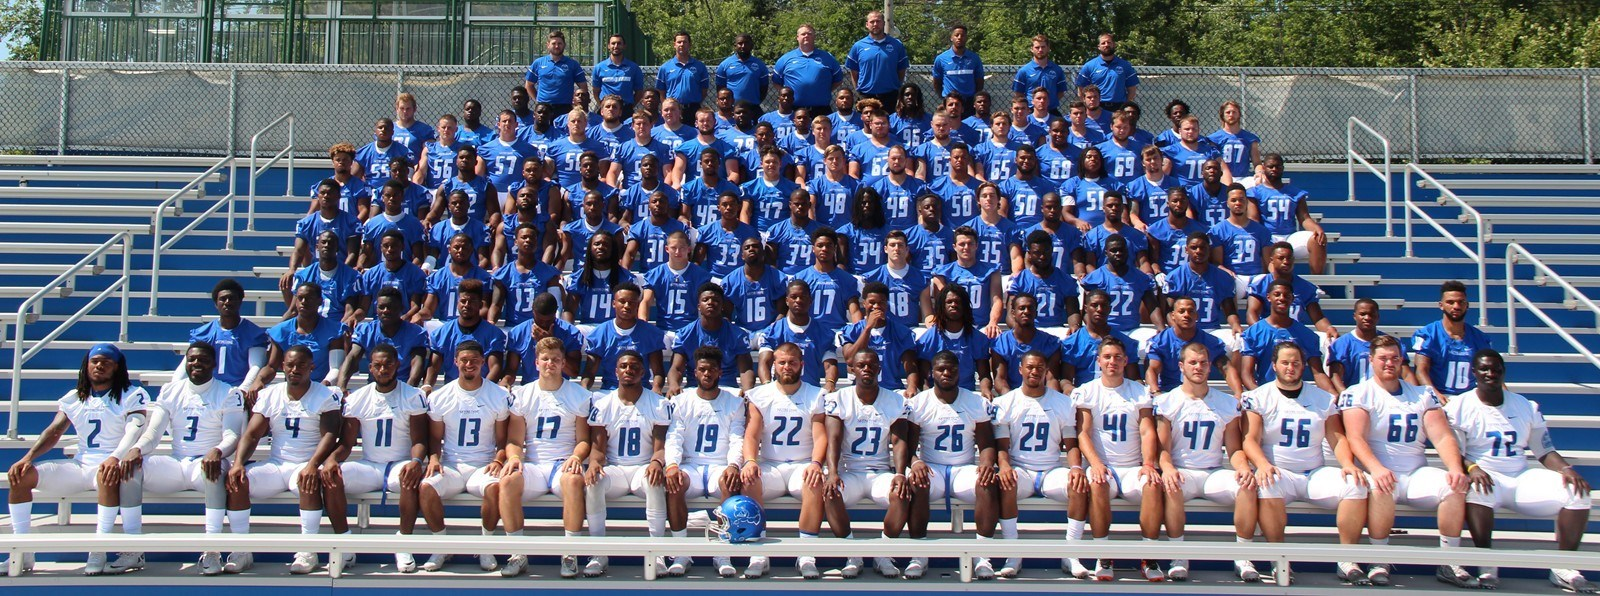 2016 0 Roster Notre Dame College Athletics